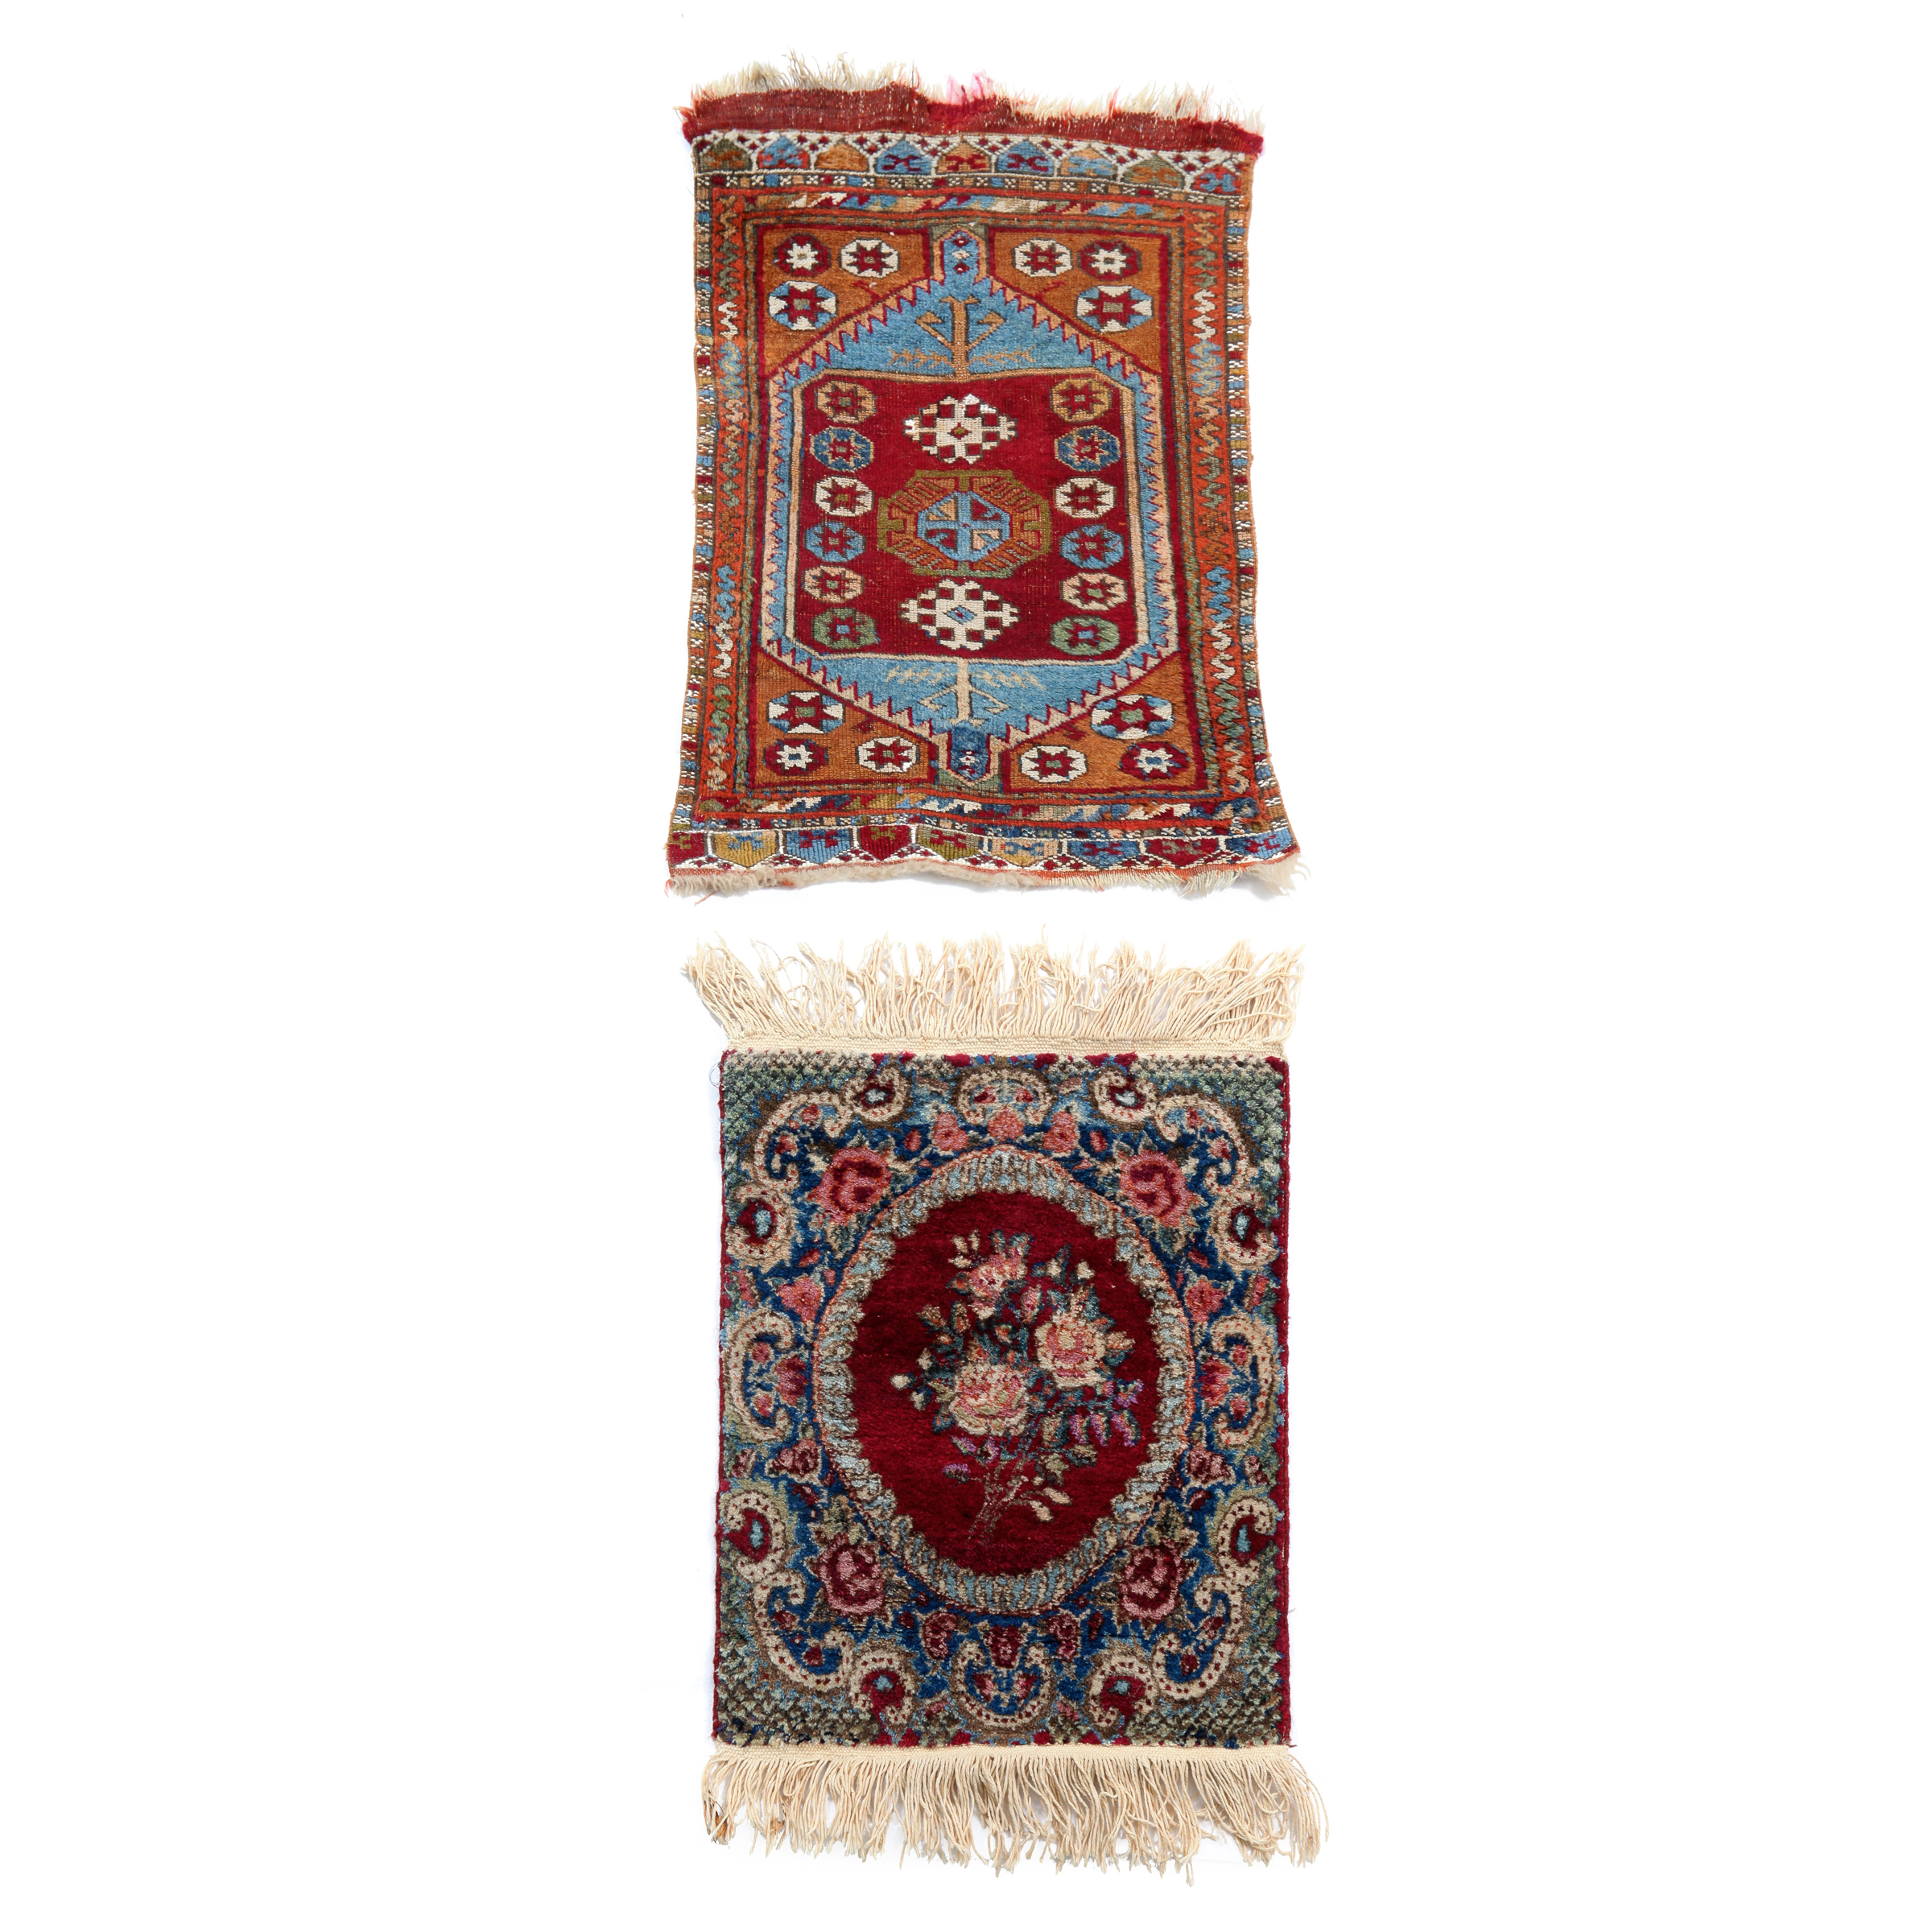 Konya Yastik, Turkish together with a Tabriz Mat, Persian, both early 20th century